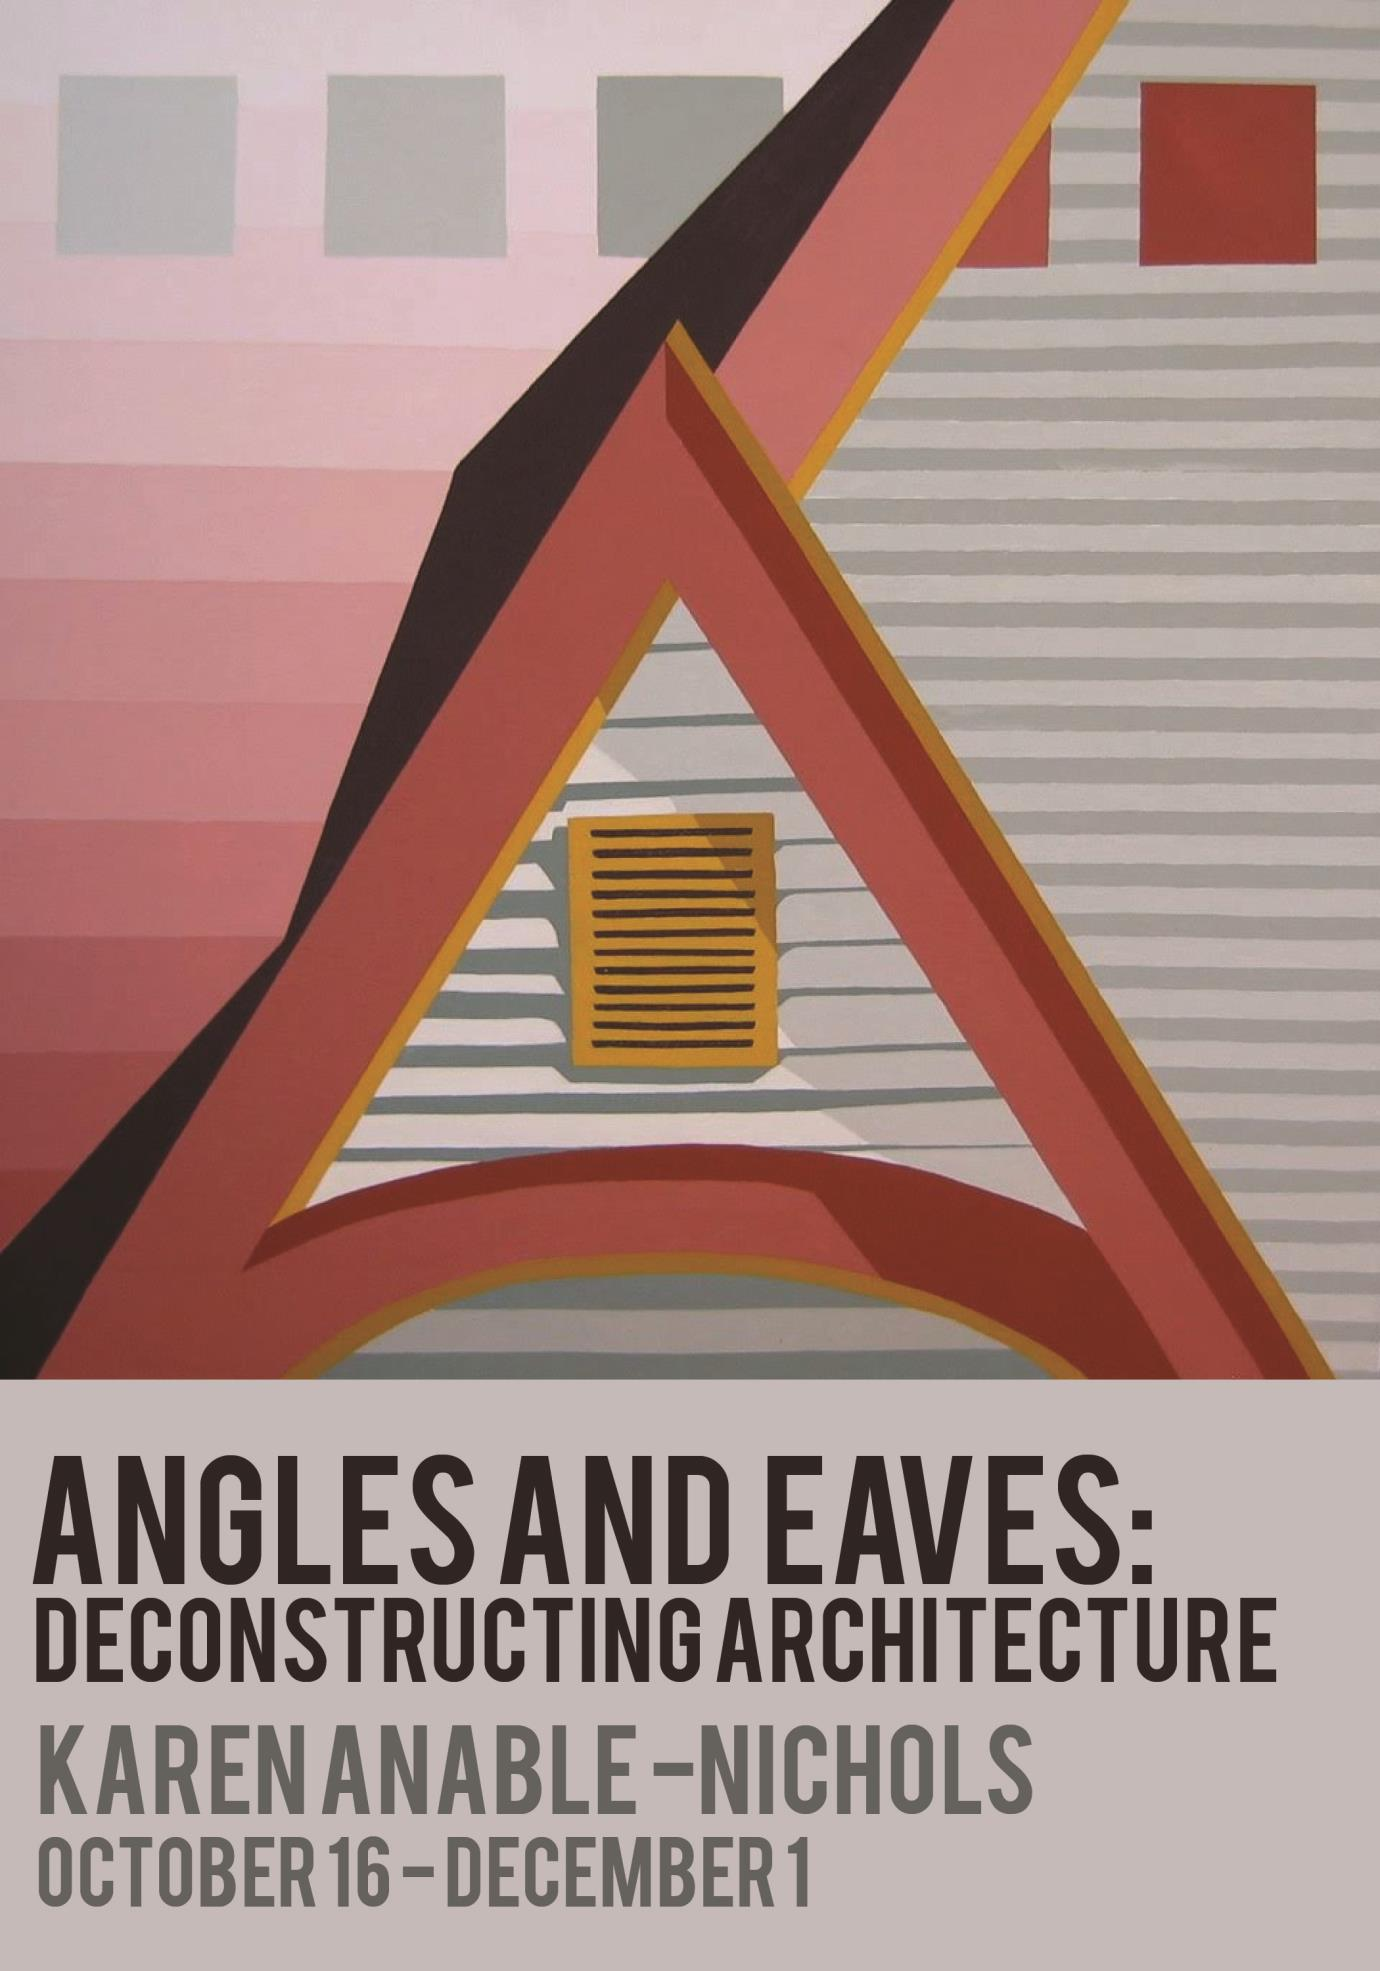 Abstract image with a red triangular shape in the middle fading from pink to red on the left side, and stripes of grey on the right; Angles and eaves: Deconstructing Architecture; Karen Anable-Nichols, October 16 - December 1